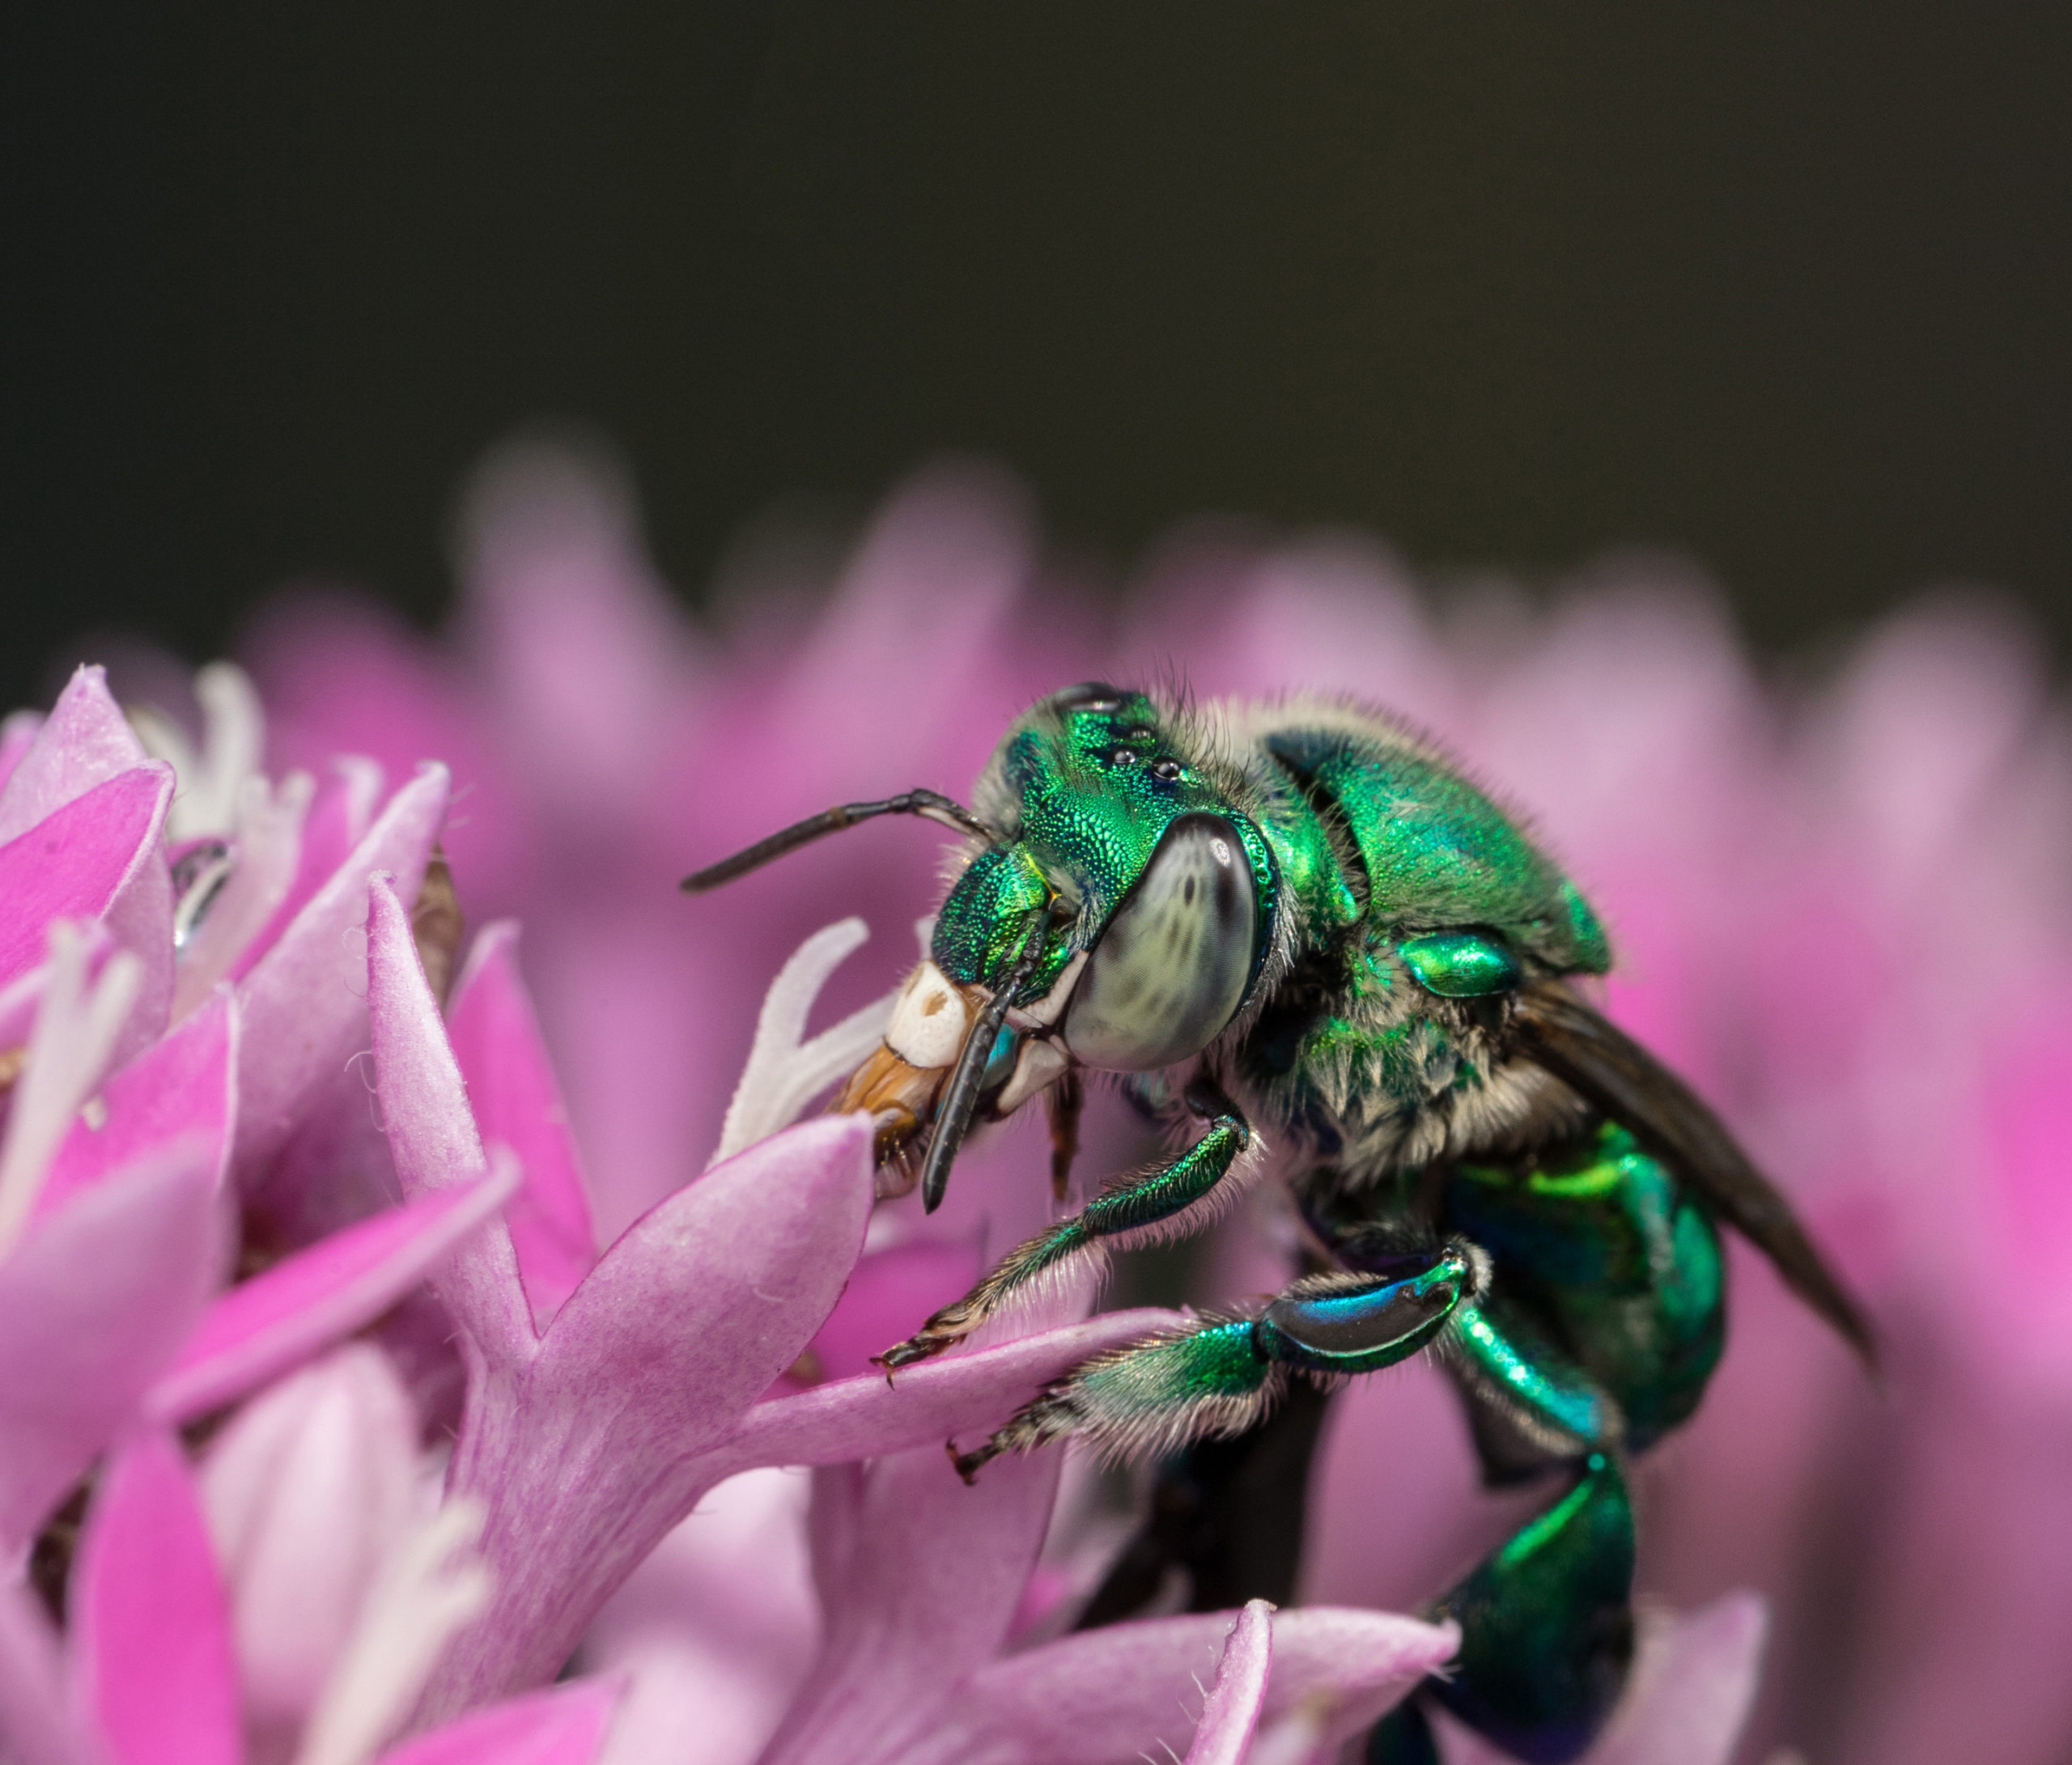 Green orchid bee drinking nectar out of a pink flower